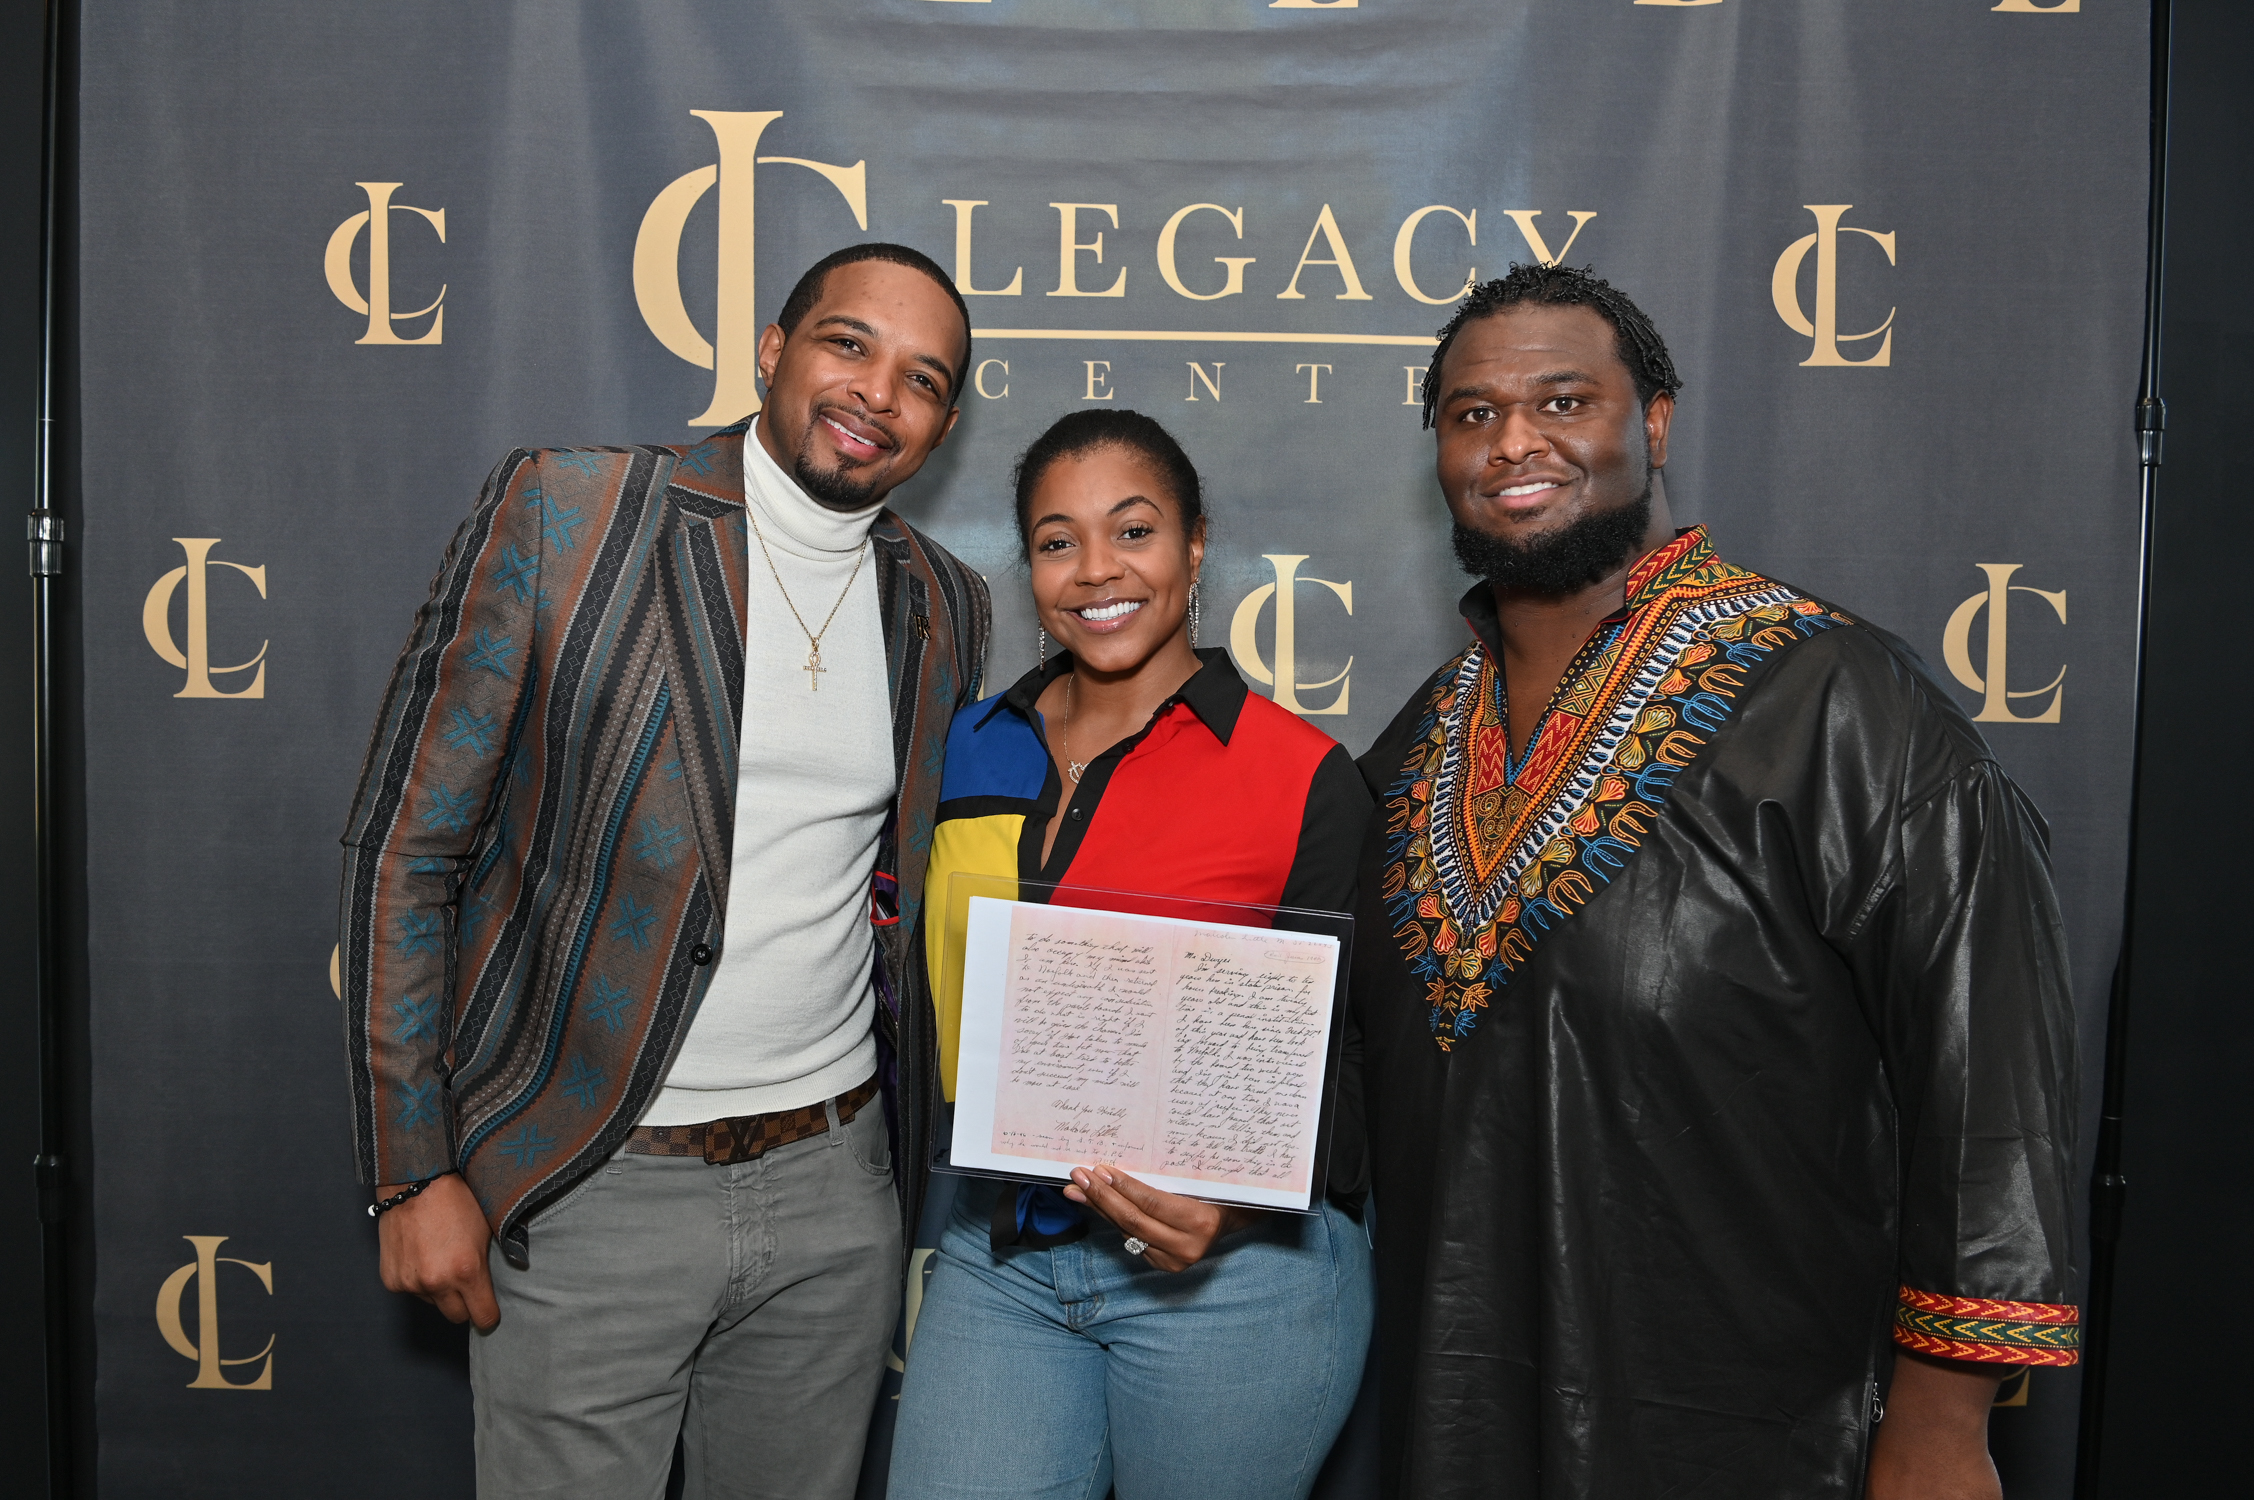 Legacy Center Partners with The African American Cultural Heritage Collection Museum Exhibit to Host the Black History Month Closeout Celebration